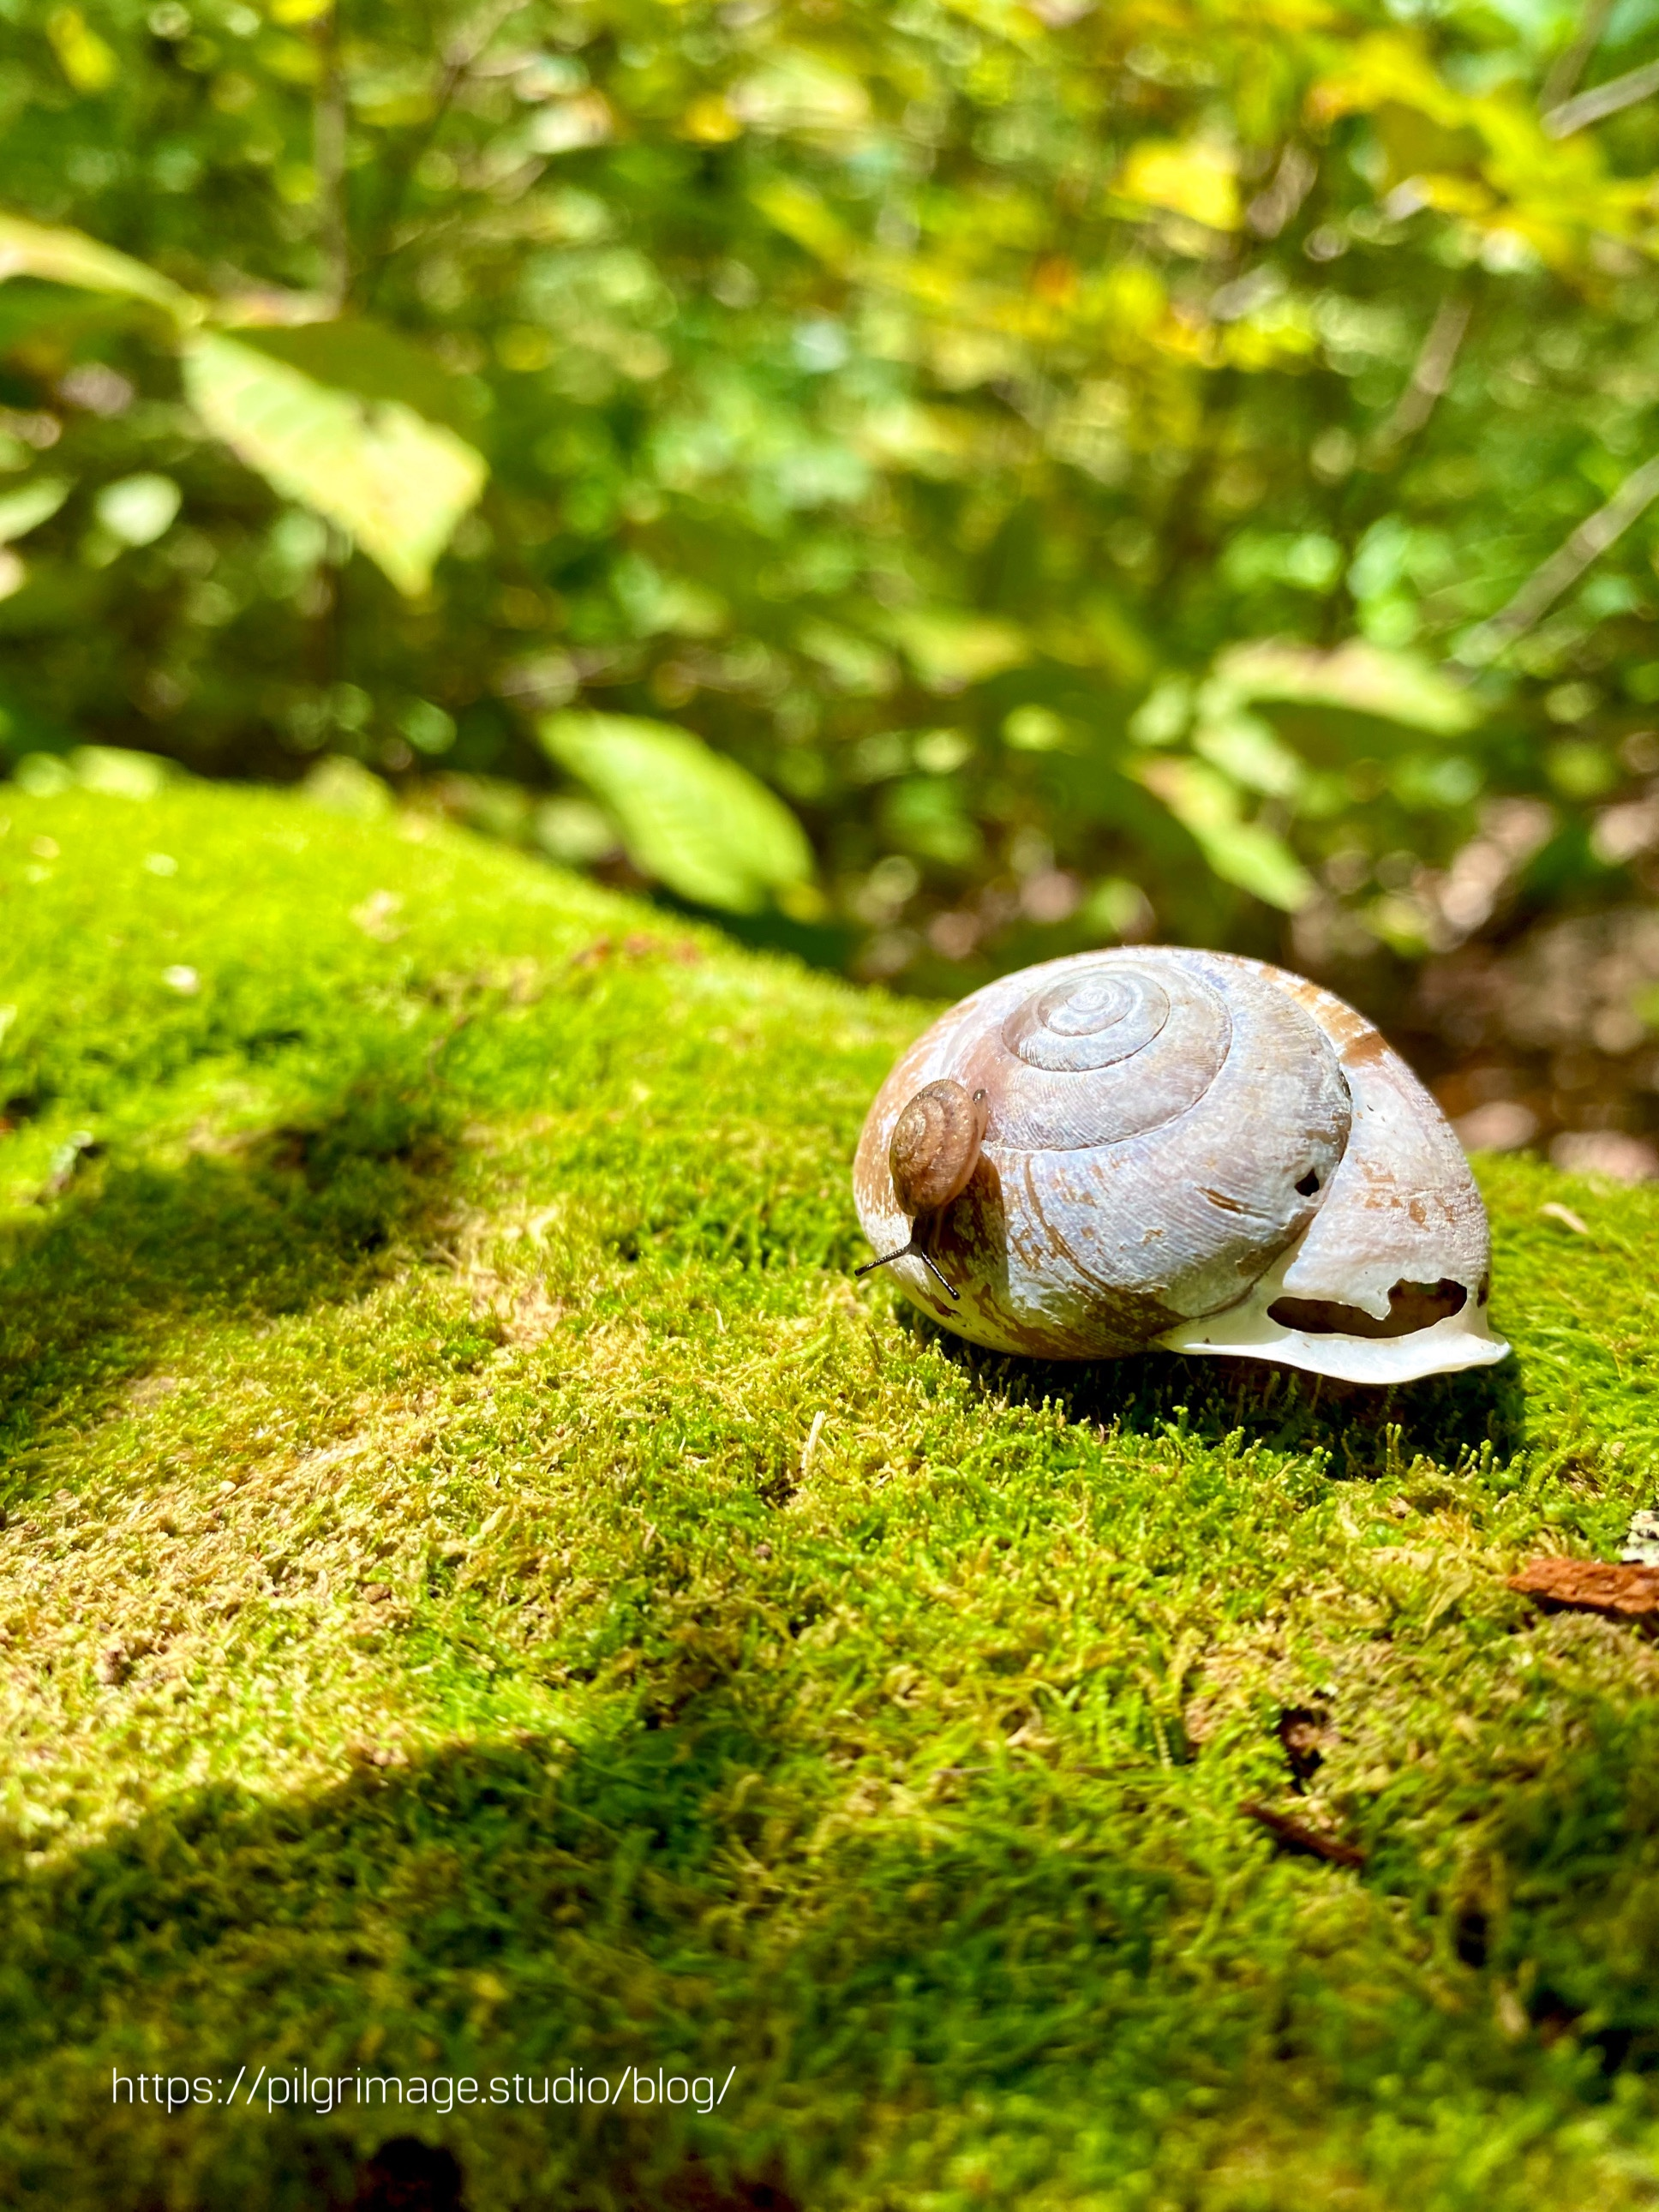 Baby snail crawling on top of an empty snail shell